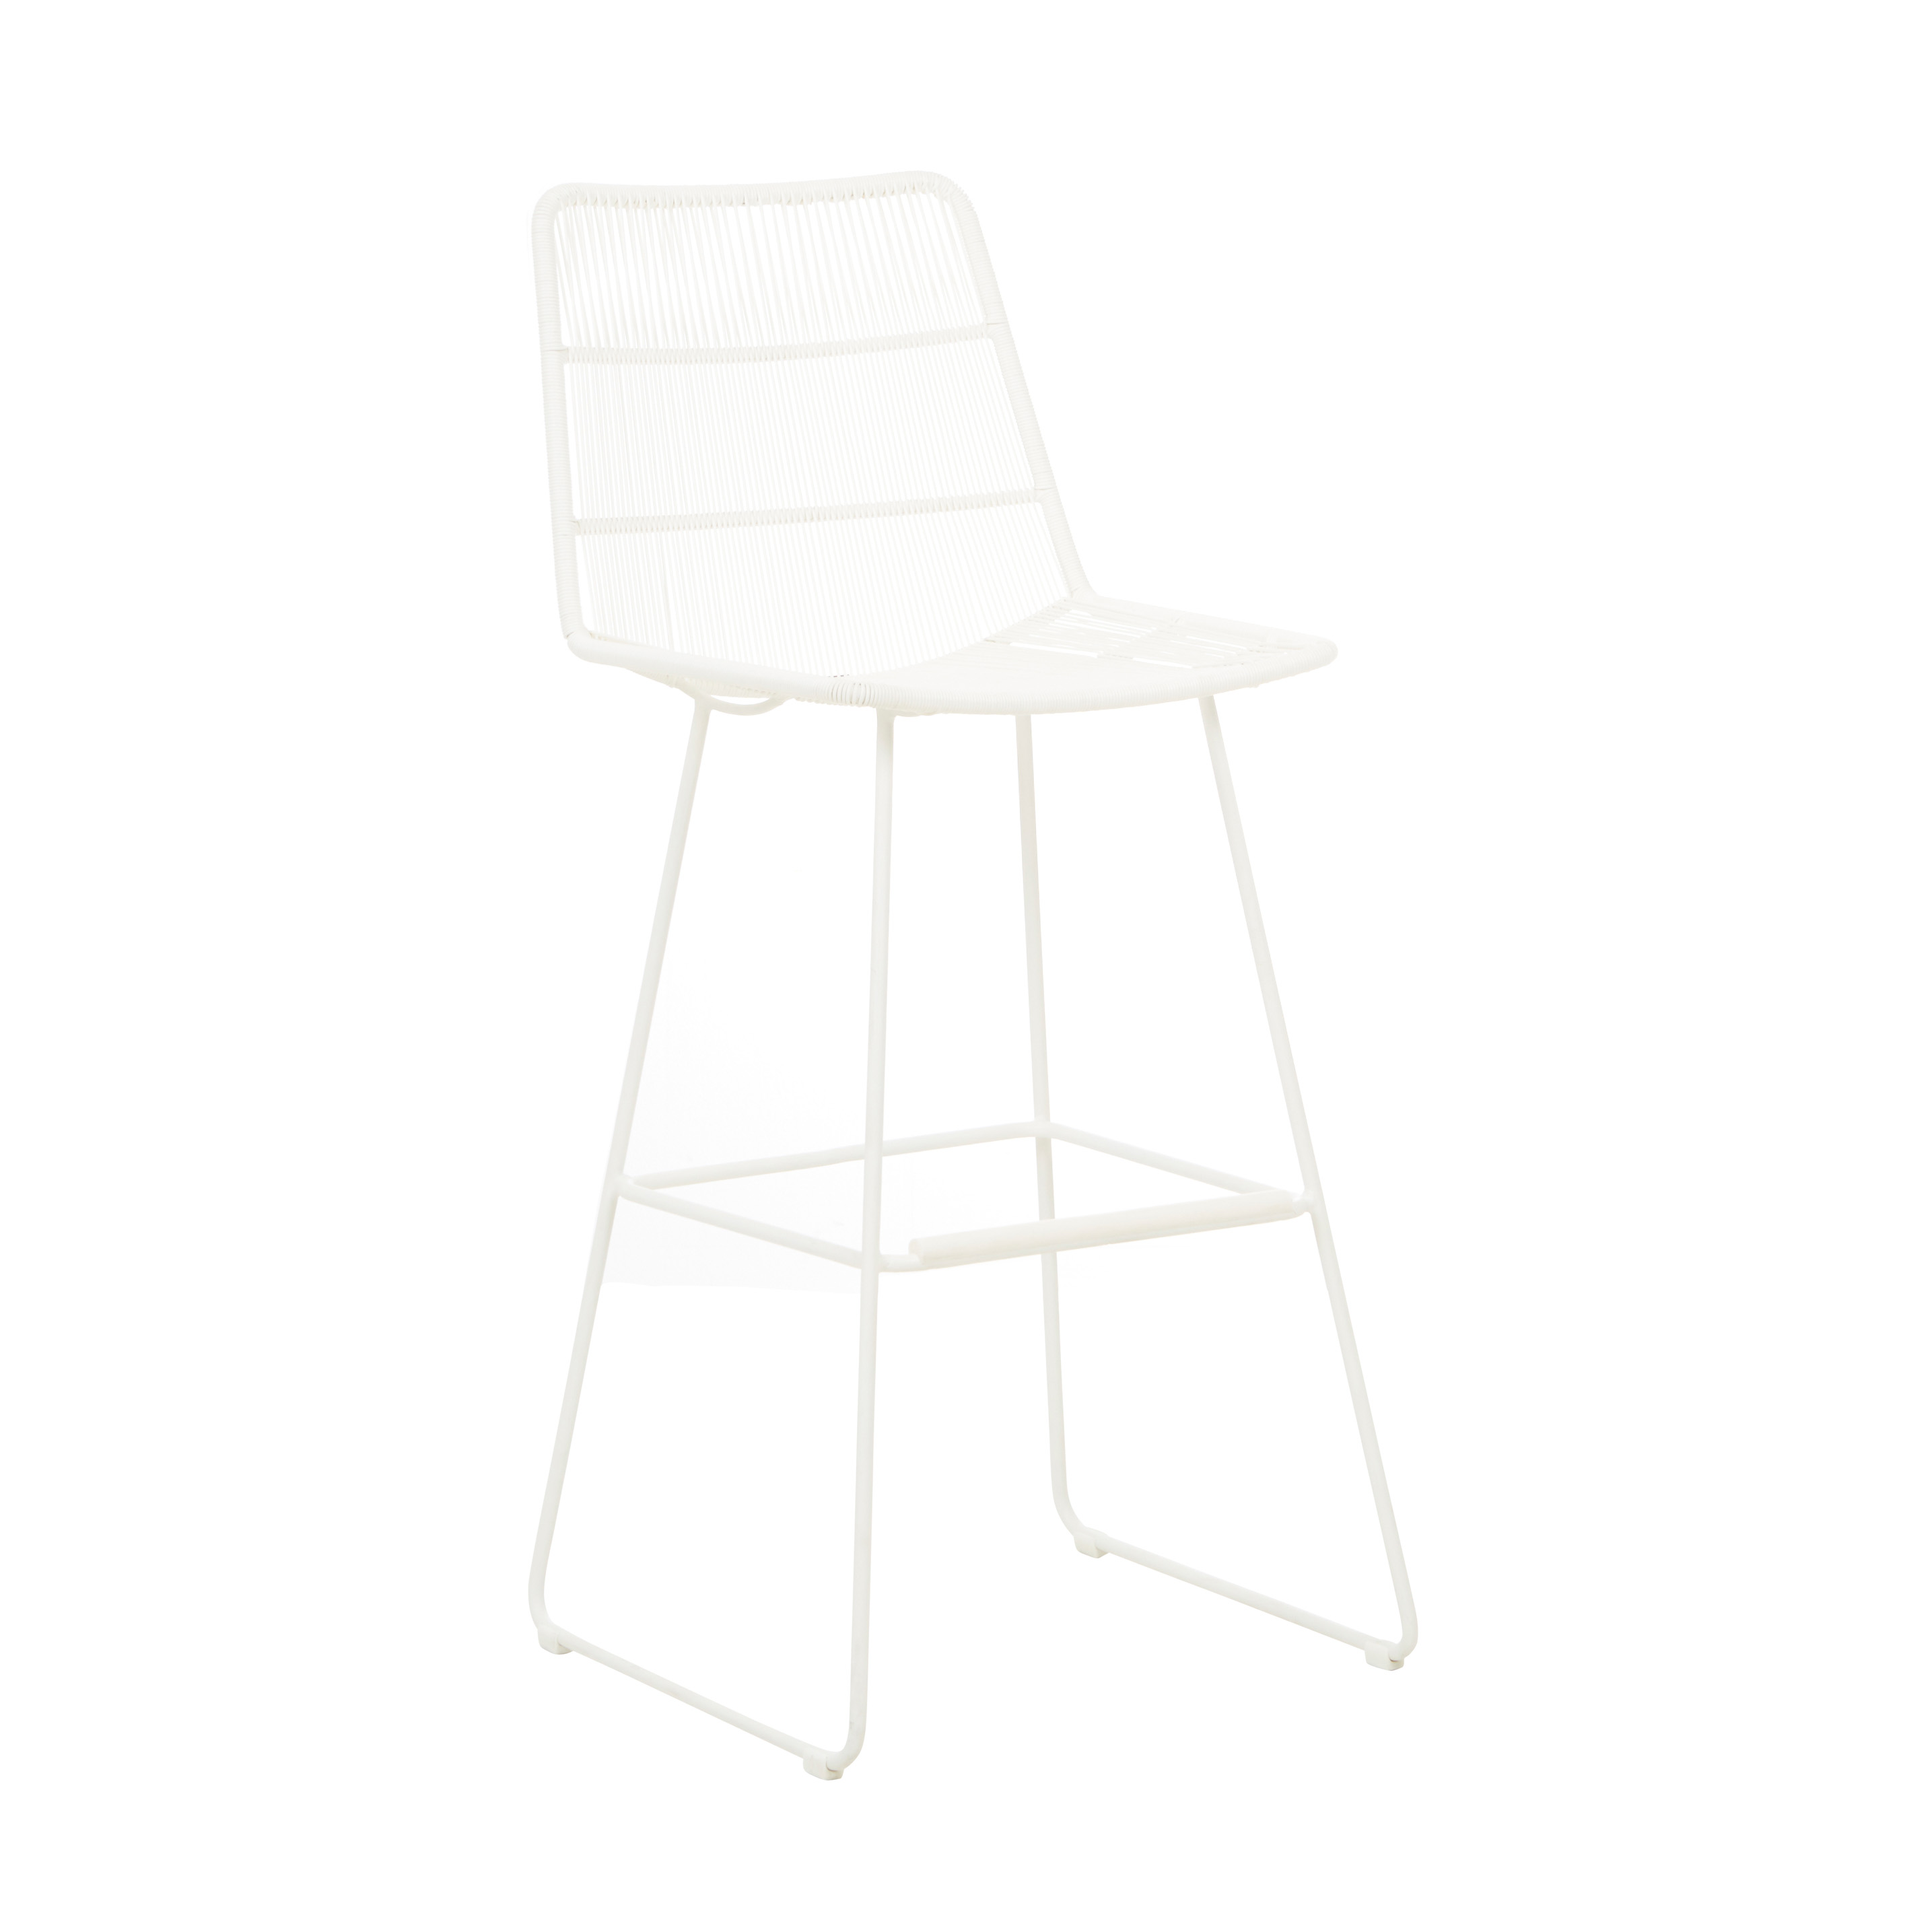 Furniture Hero-Images Dining-Chairs-Benches-and-Stools granada-sleigh-barstool-02